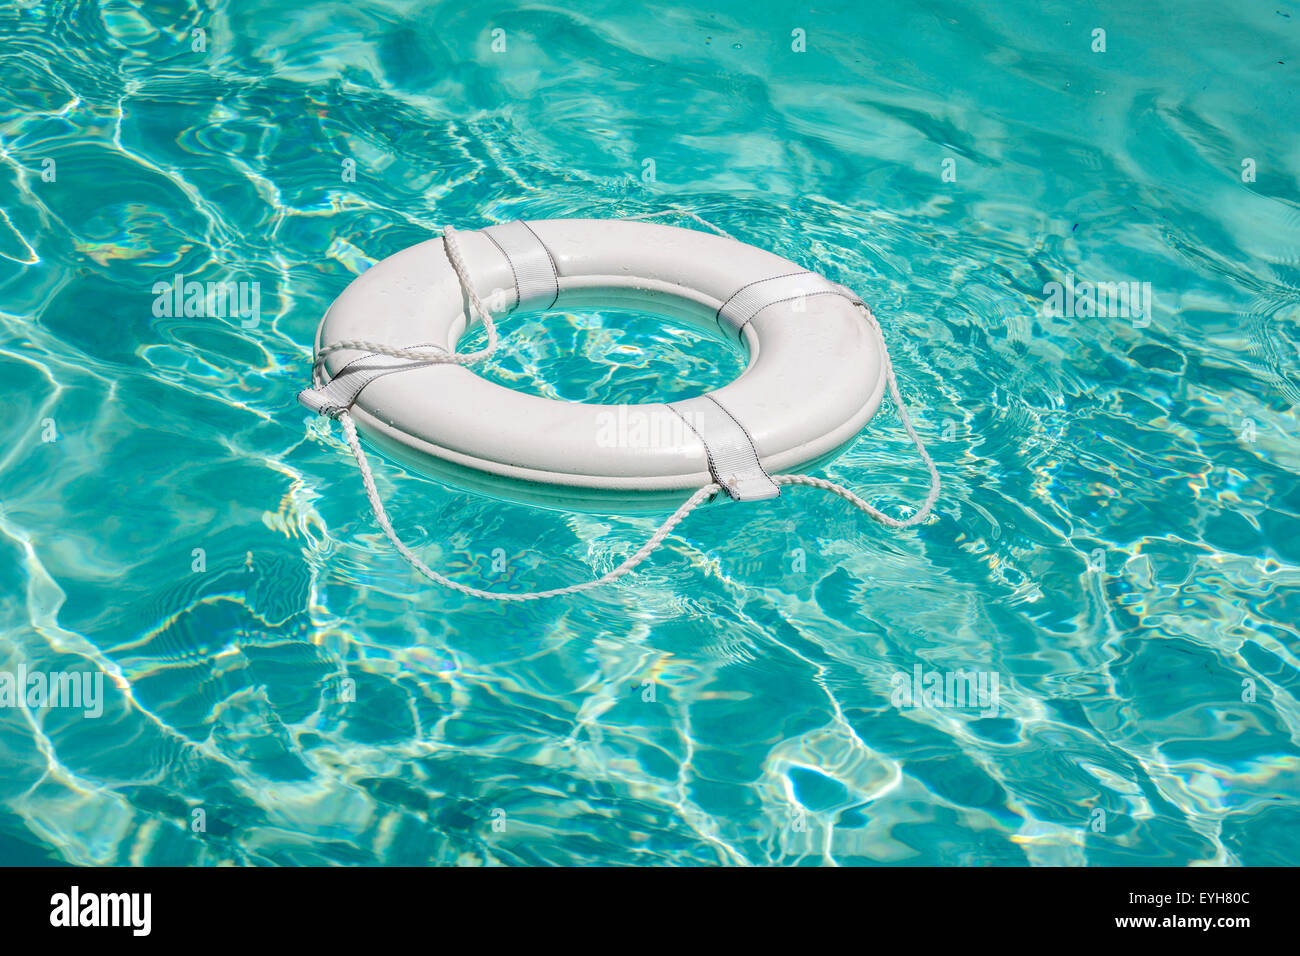 Life buoy in swimming pool life saver - Stock Image